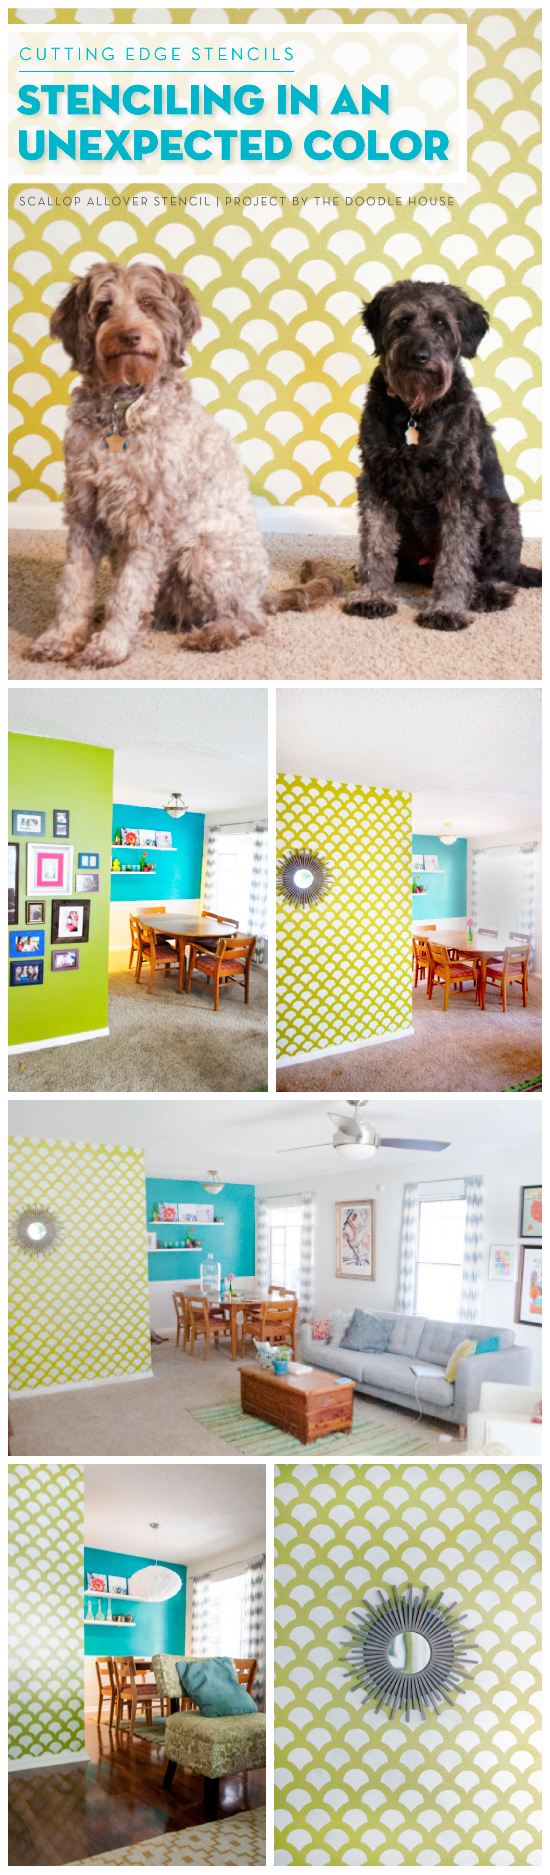 A DIY stenciled accent wall using the Scallop Allover Stencil to look like wallpaper. http://www.cuttingedgestencils.com/scallop-stencil-for-walls.html